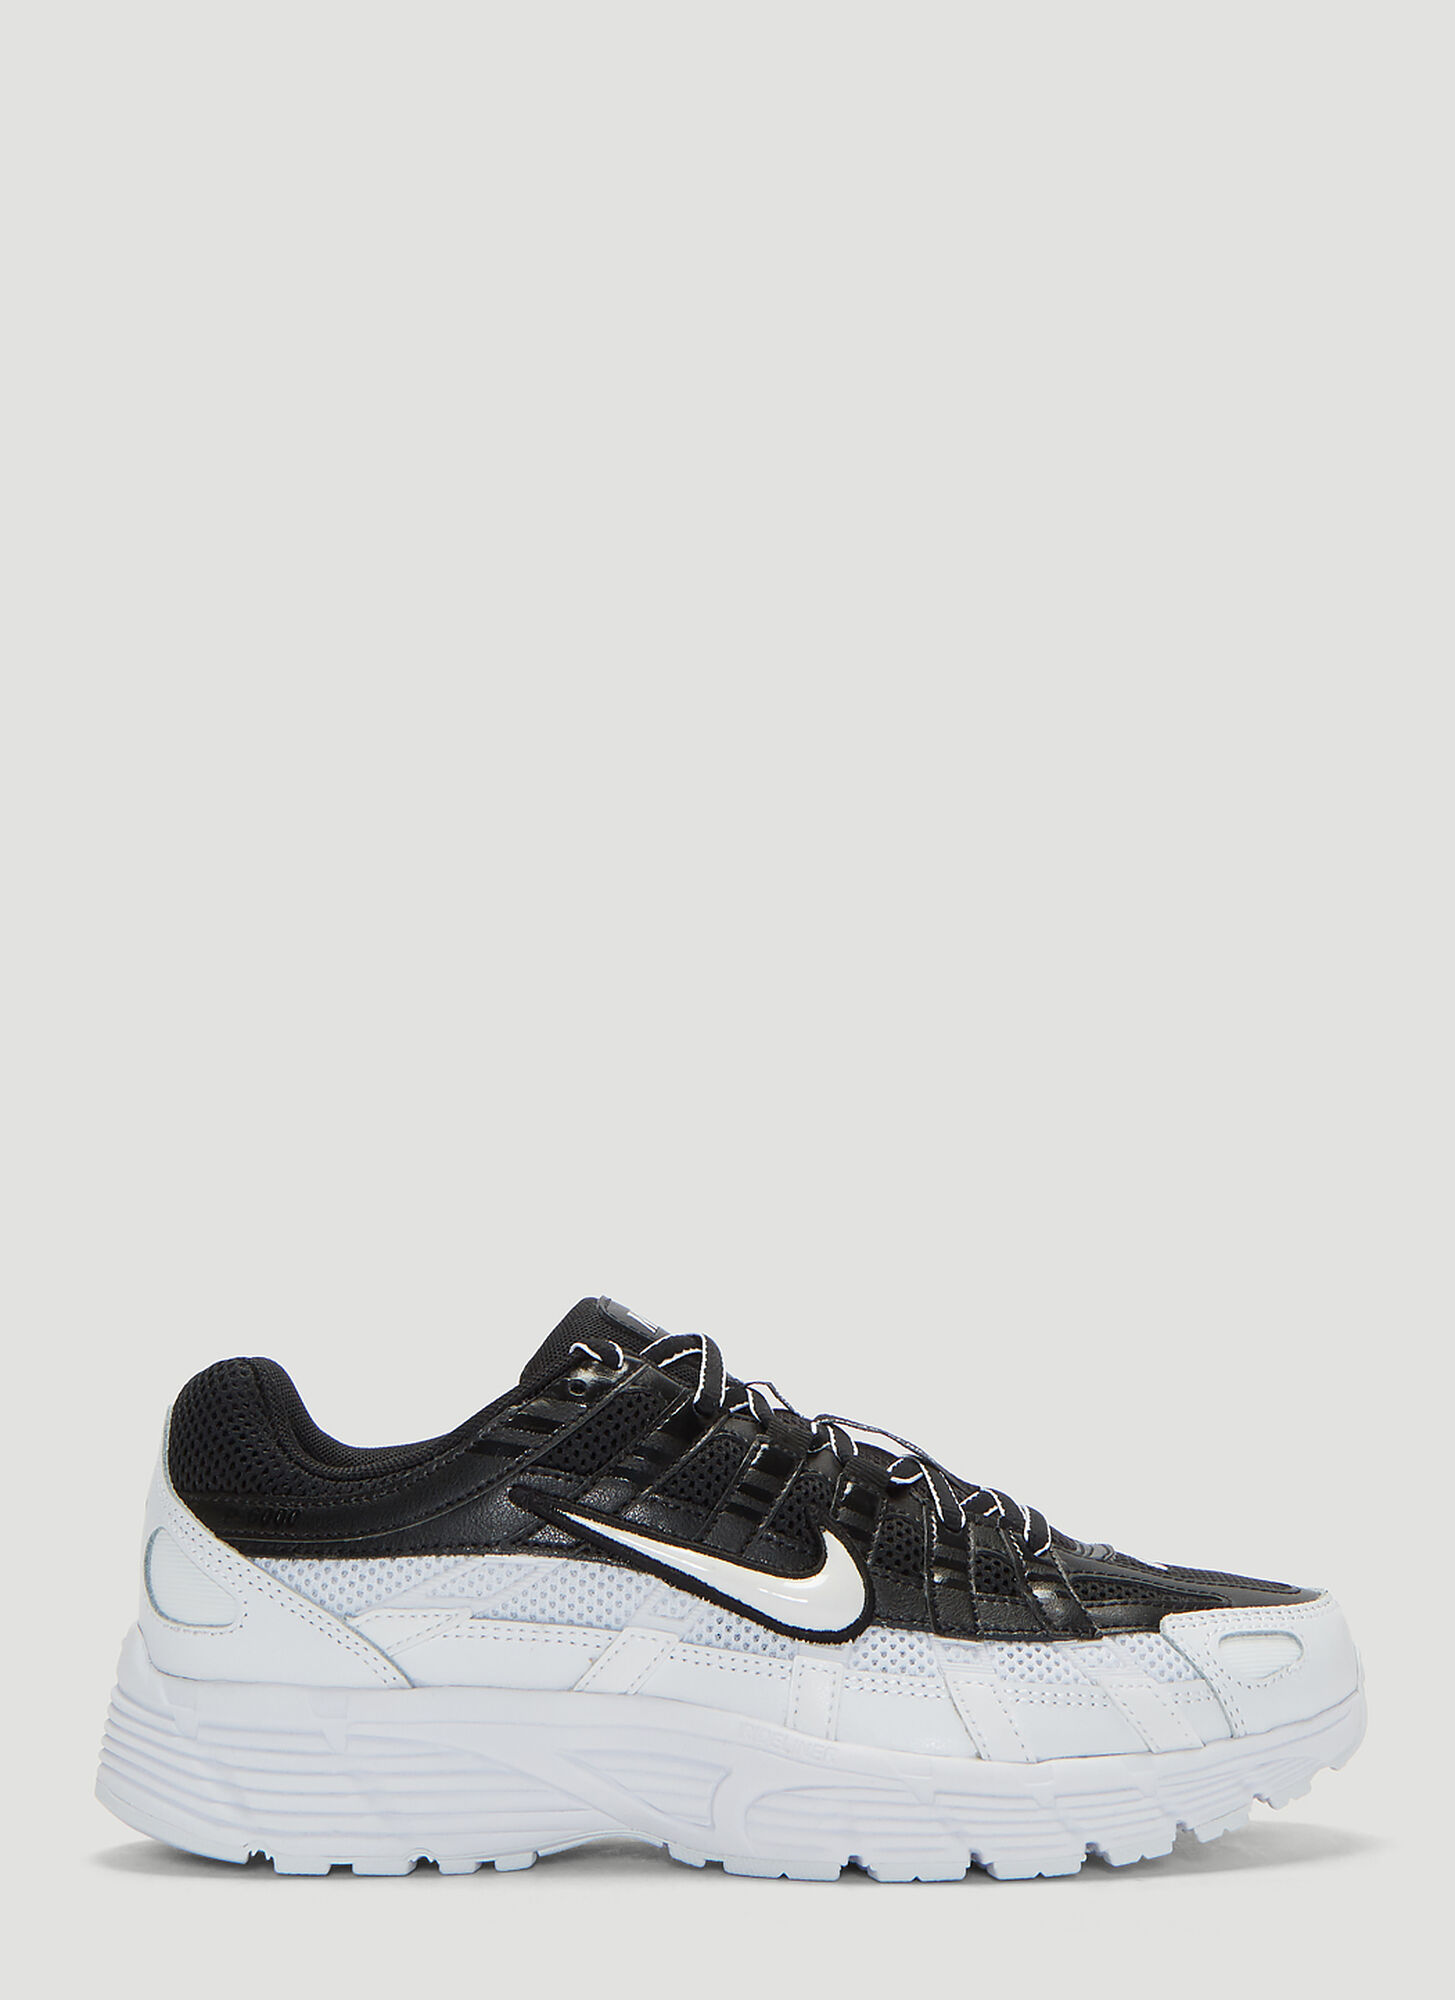 Nike P-6000 Sneakers in Black